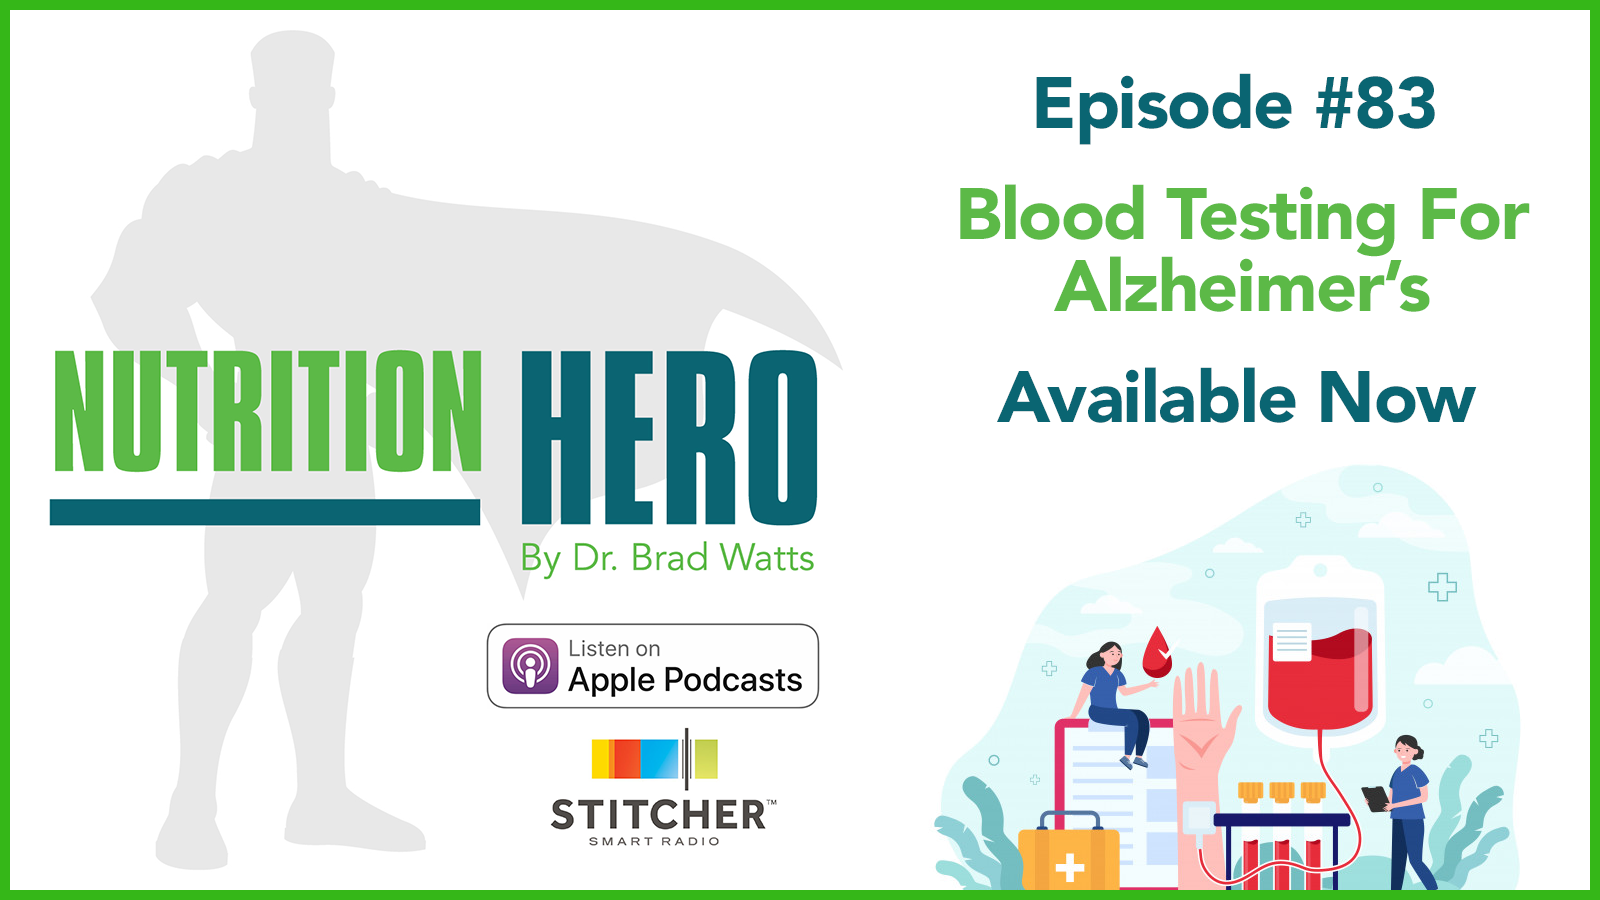 Episode #83 - Blood Testing For Alzheimer's show art